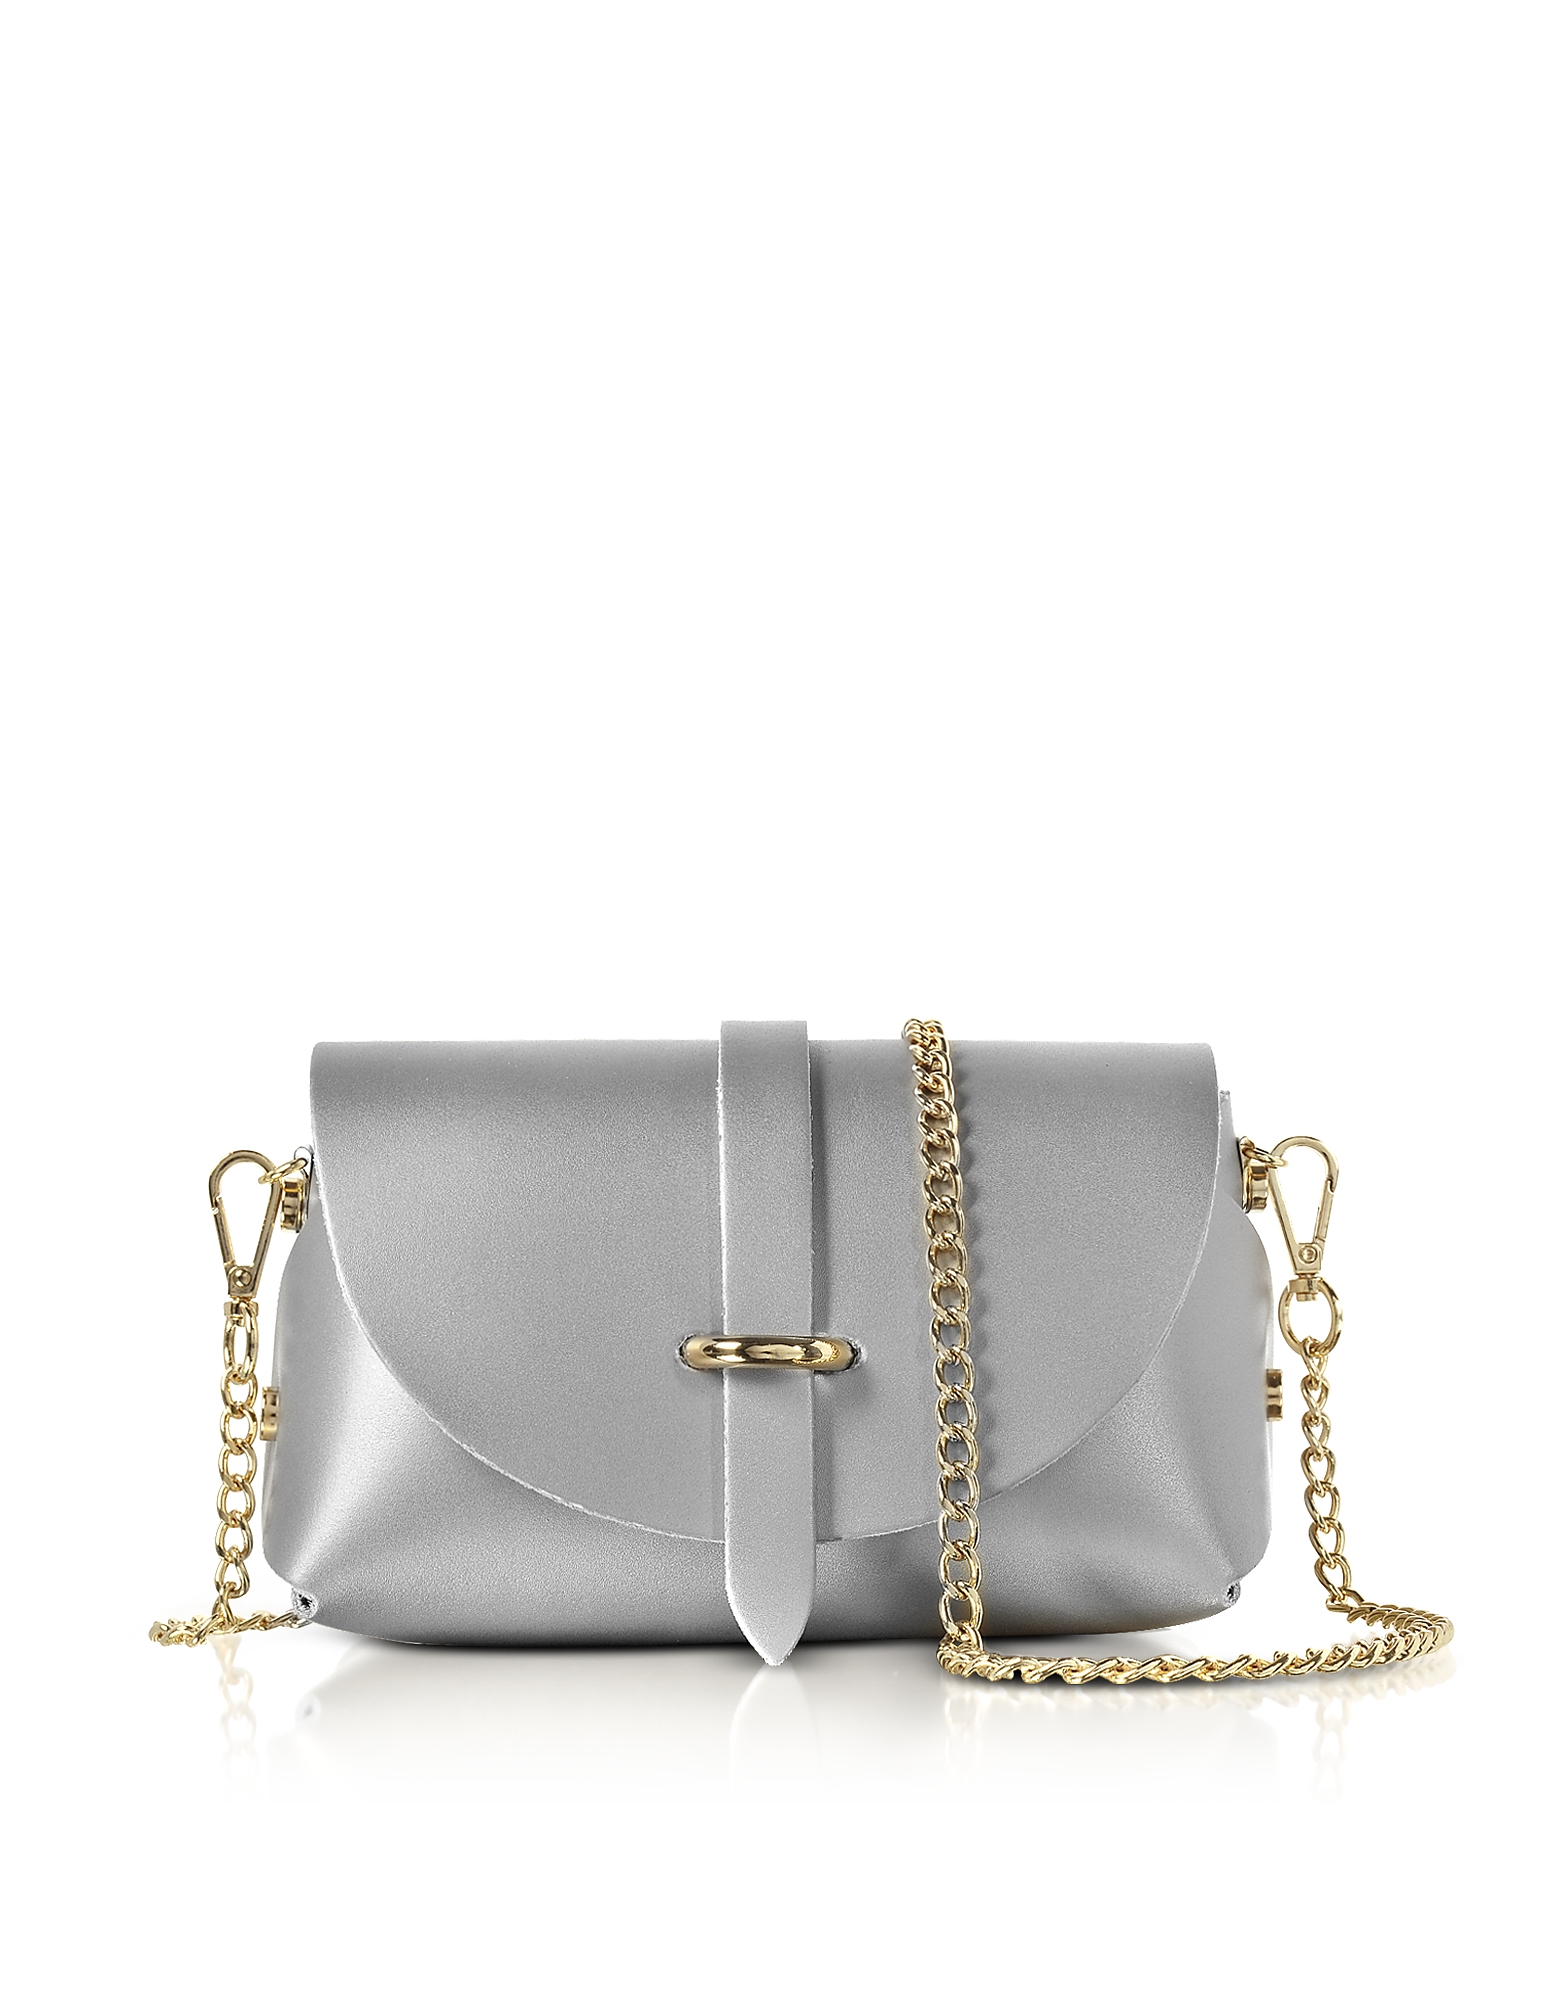 Gisèle 39 Designer Handbags, Caviar Metallic Leather Mini Shoulder Bag